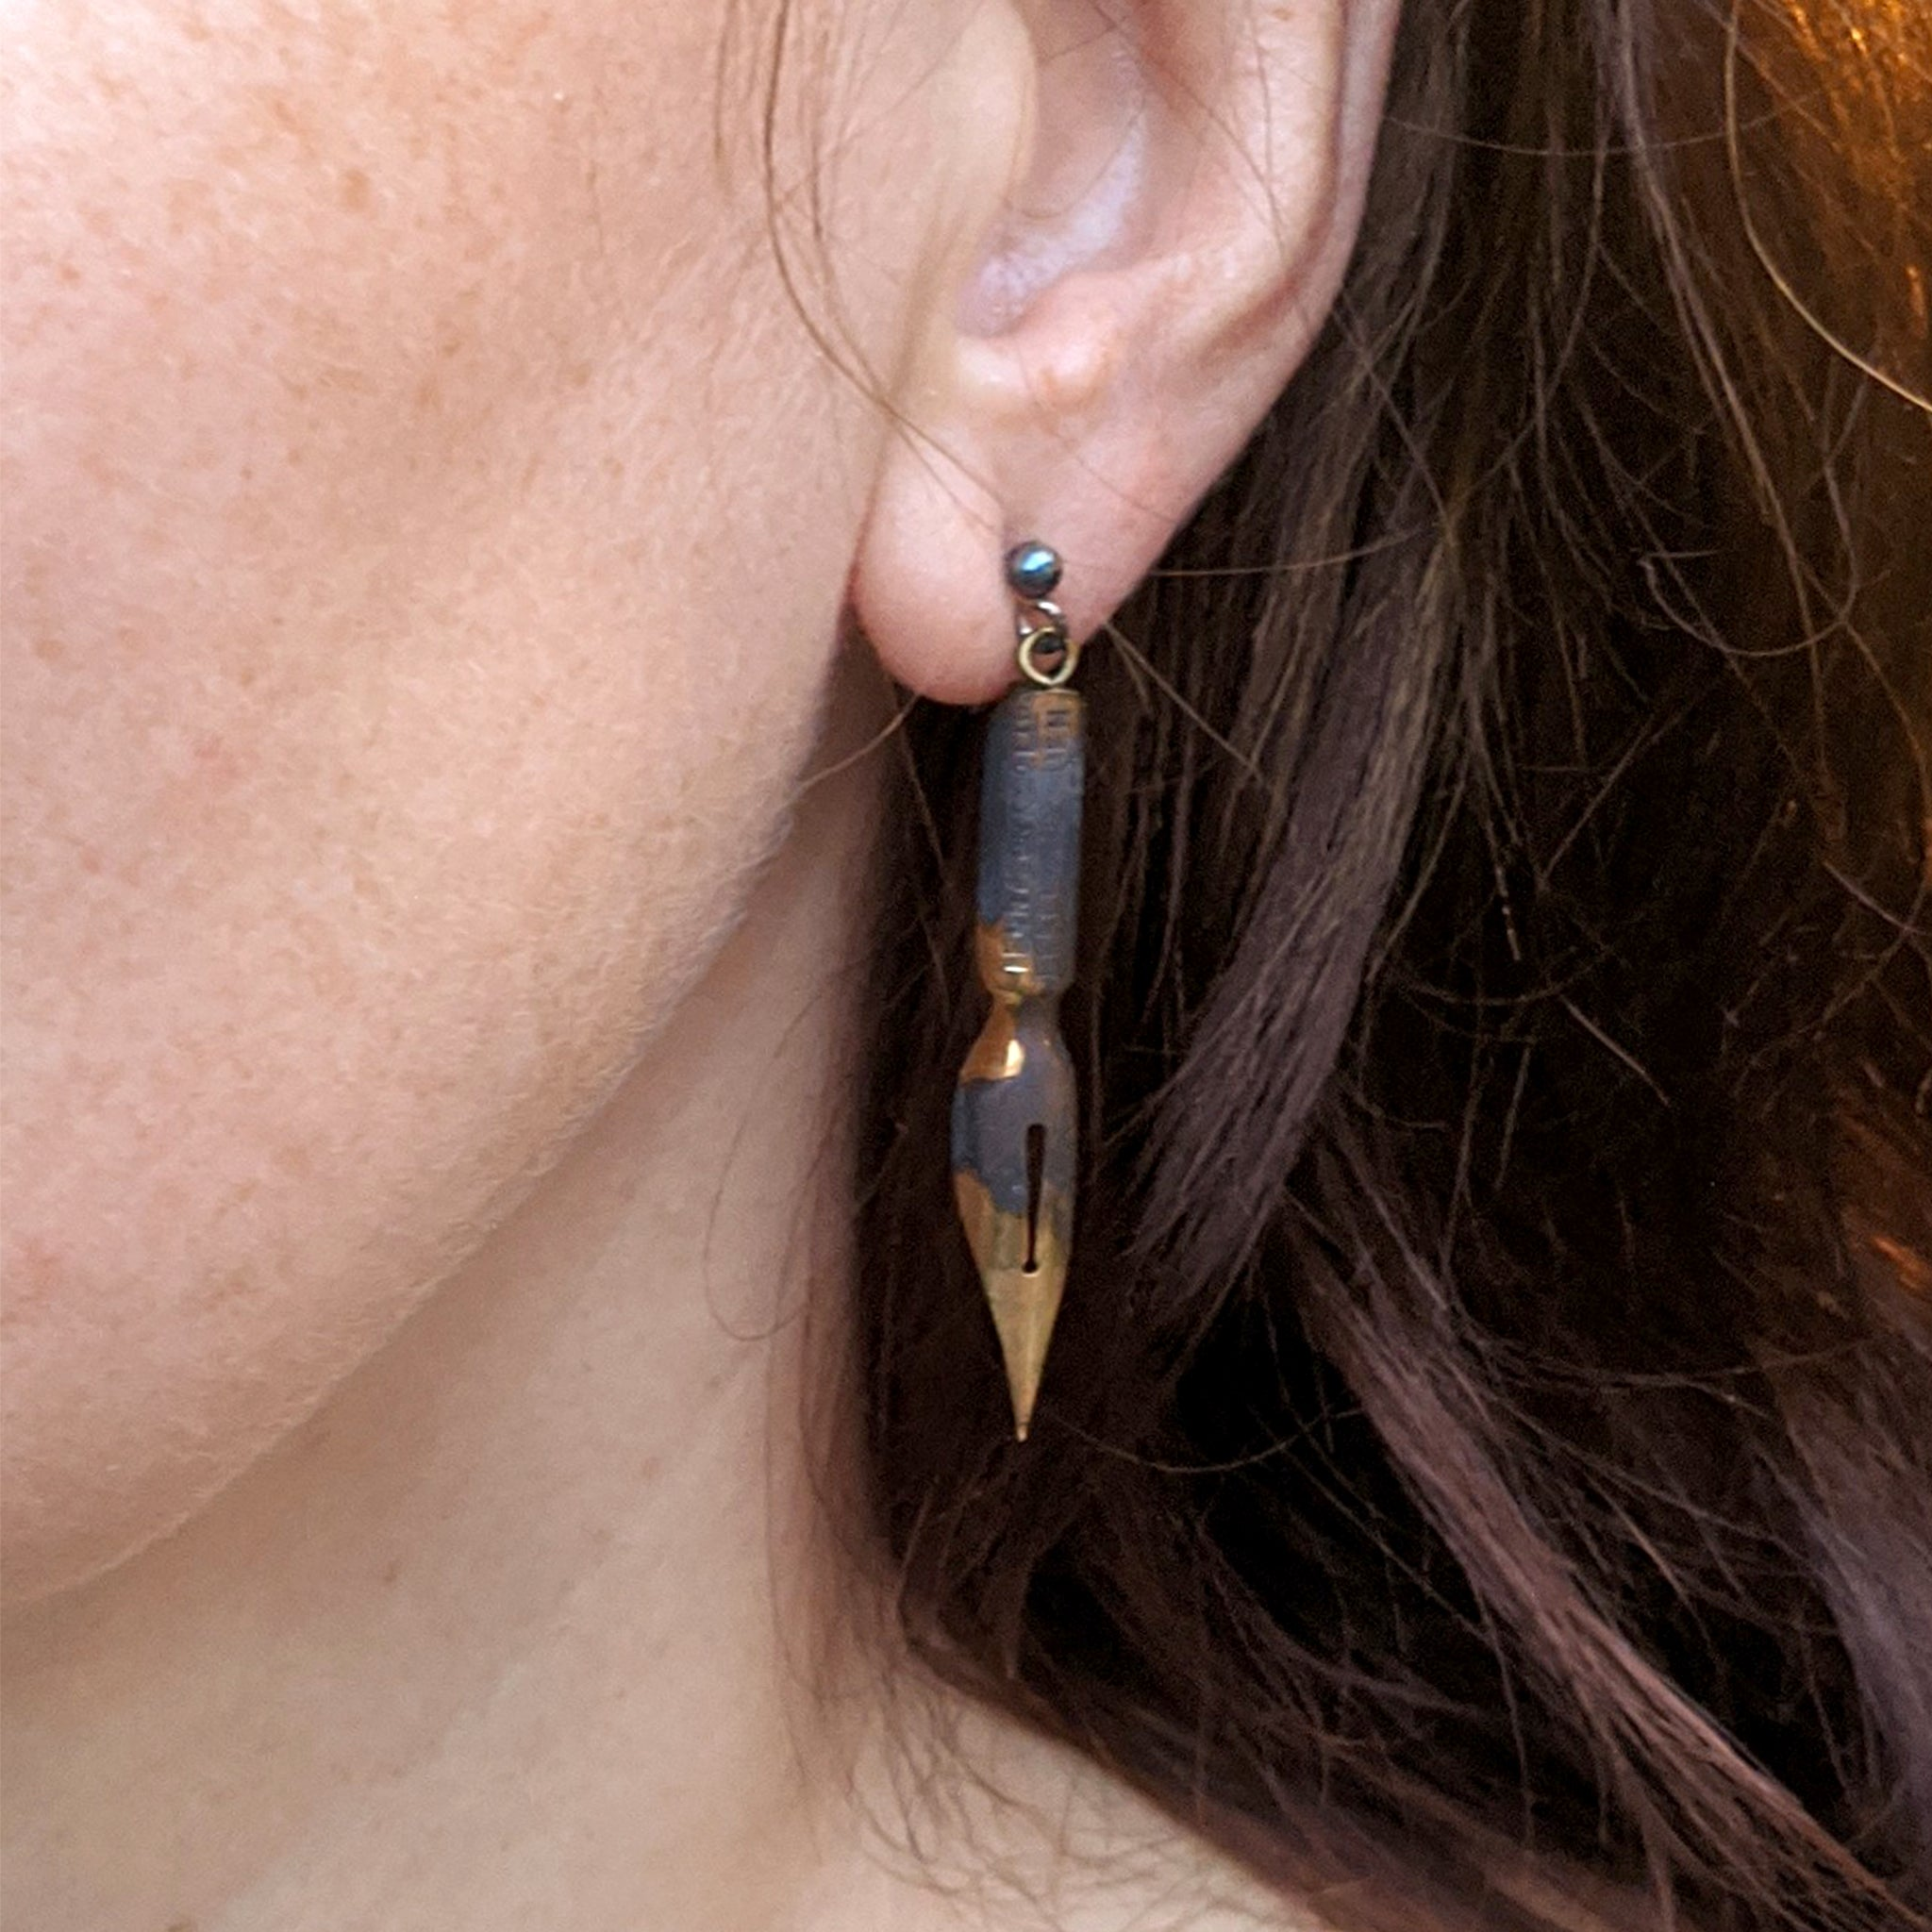 Long Dangle Earrings made of antique pen nibs in gold color worn on ear